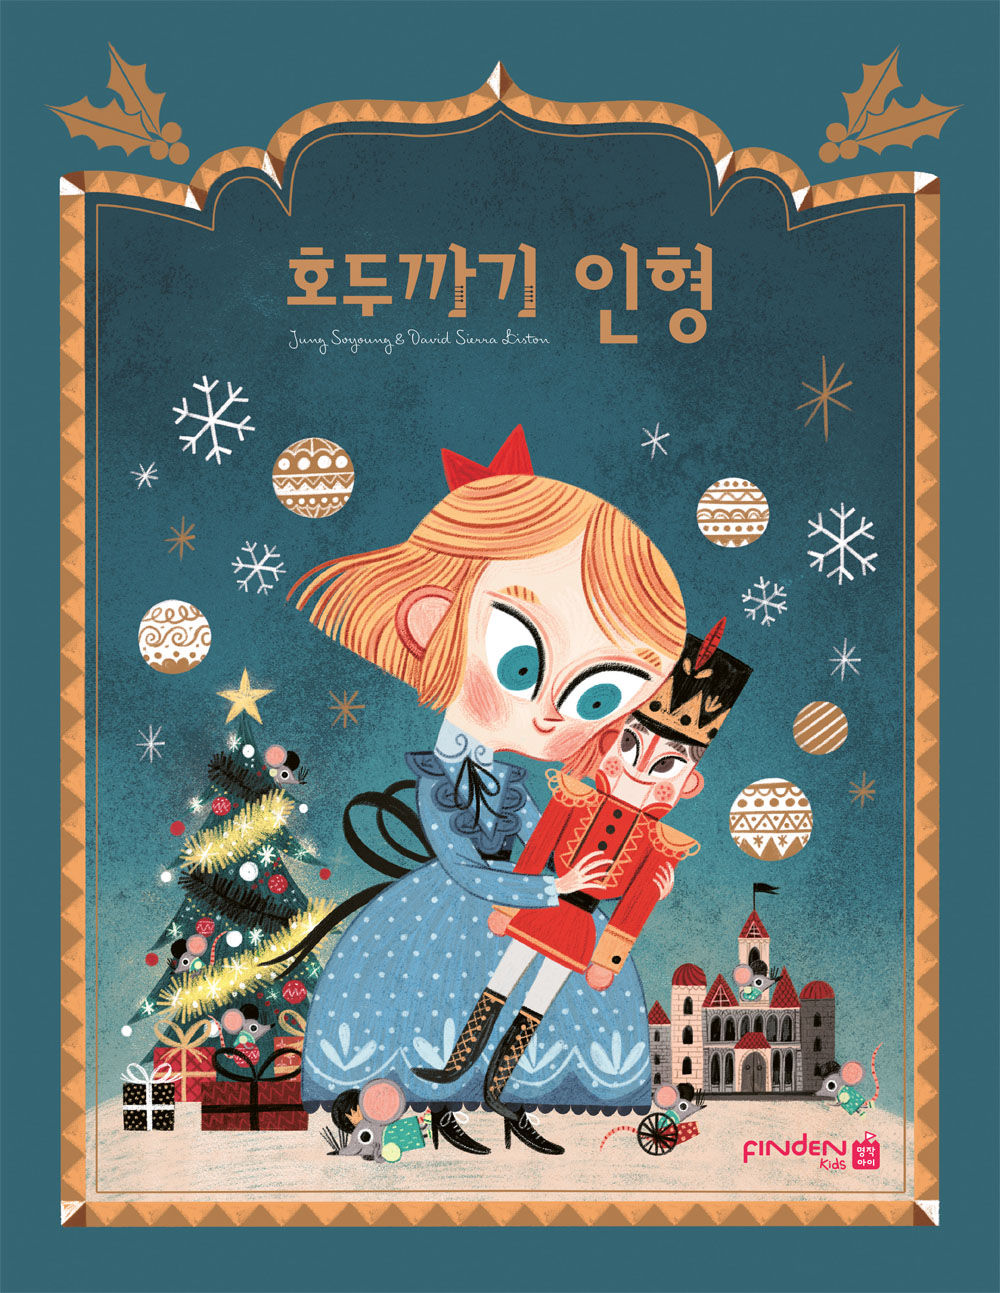 The Nutcracker - 2019.  Jung Soyoung.  Finden Kids.